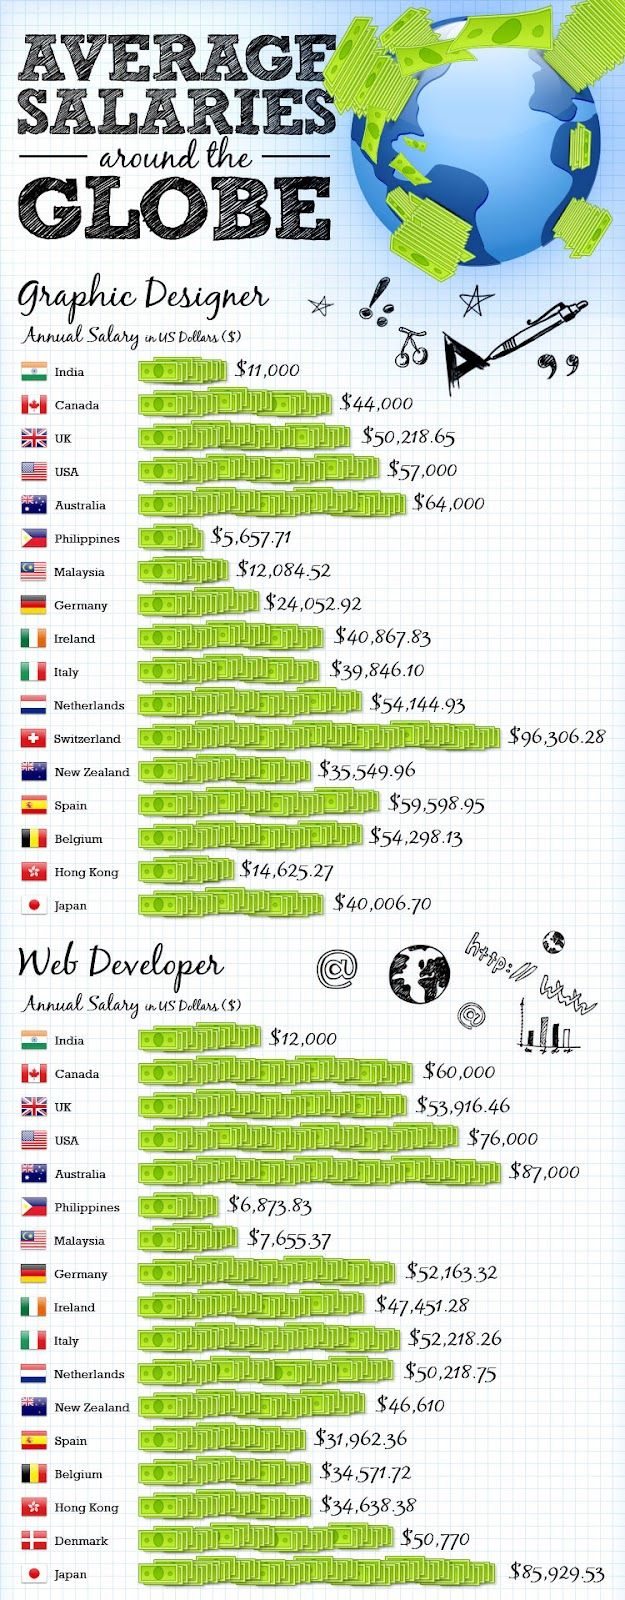 Average Salary Of A Graphic Designer And Web Developer Graphic Designer Salary Graphic Design Web Development